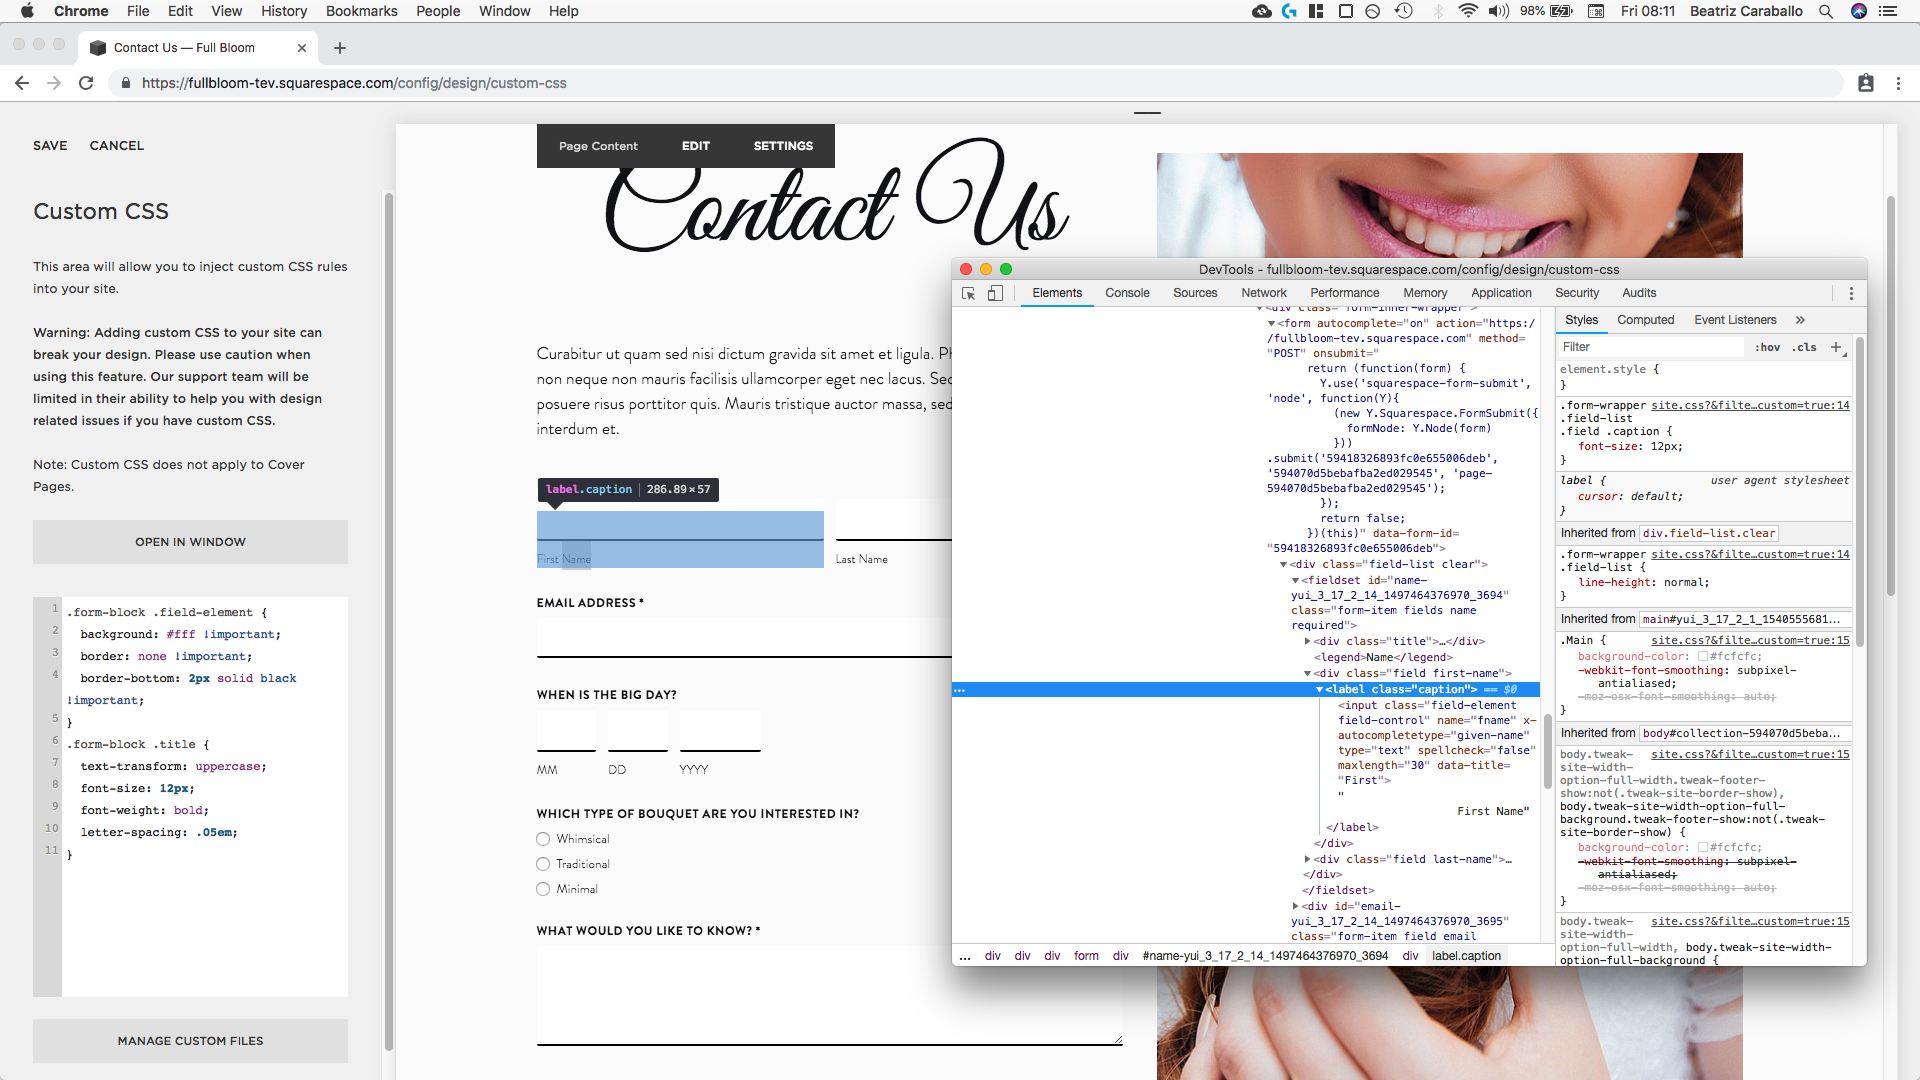 15. Targeting the first name and last name labels Squarespace.png